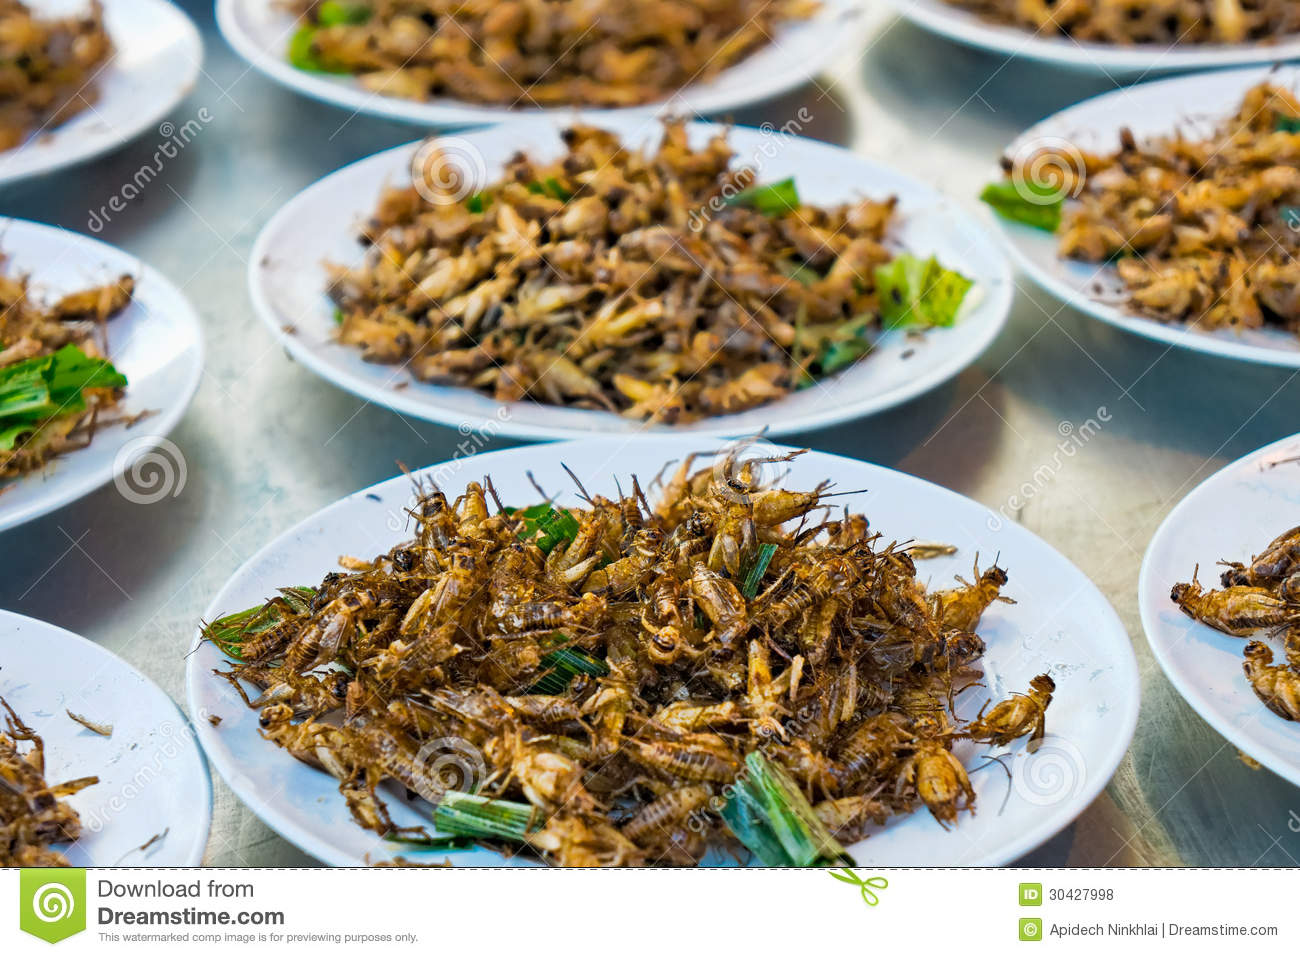 Fried Grasshoppers Royalty Free Stock Photos - Image: 30427998